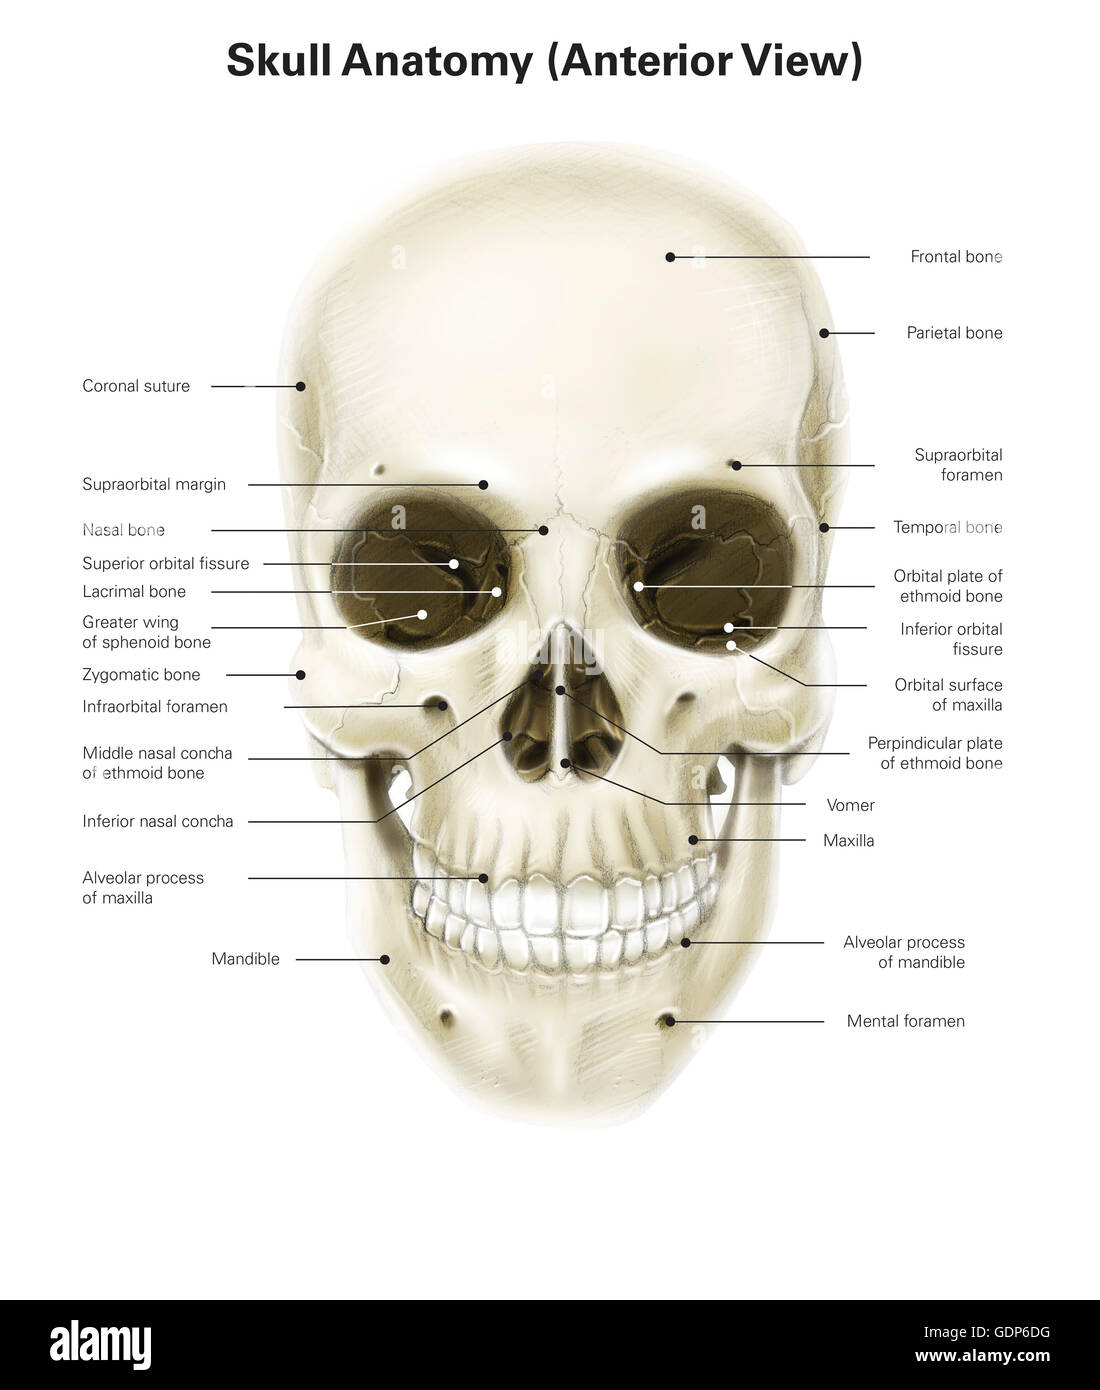 Anterior View Of Human Skull With Labels Stock Photo